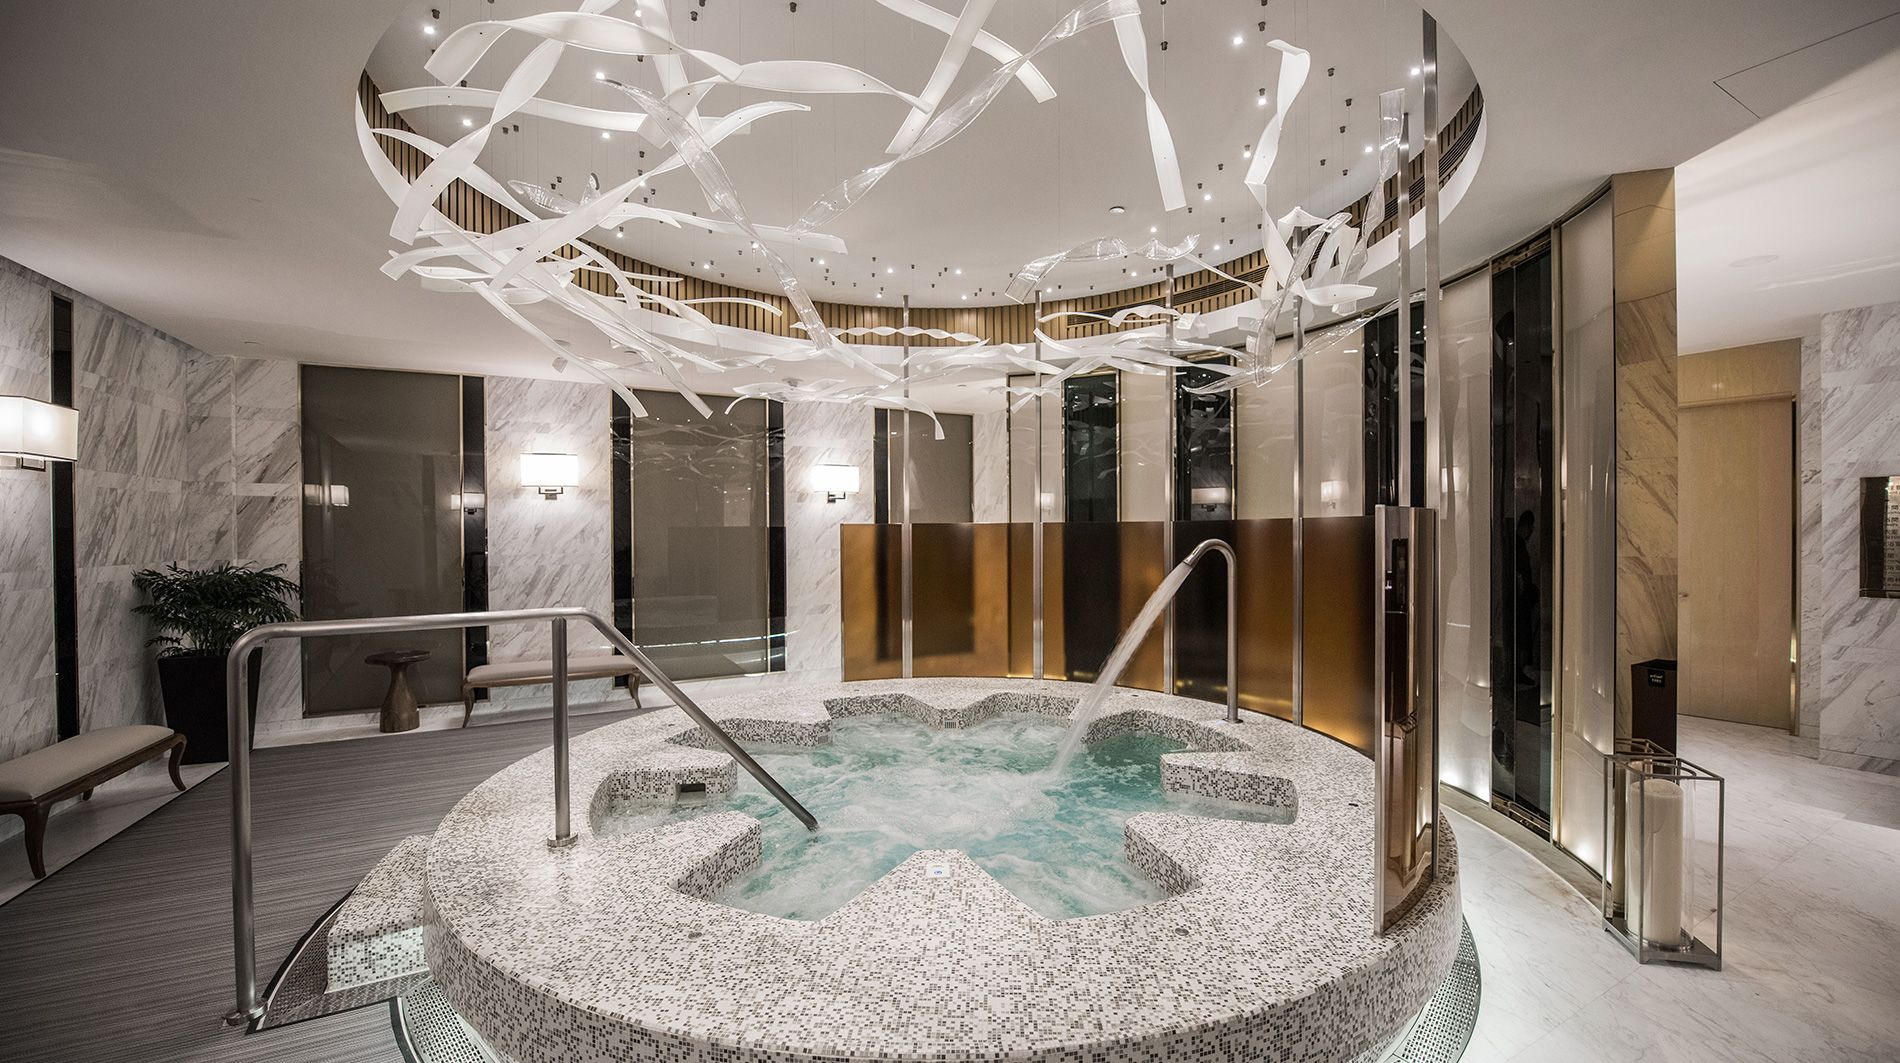 spa day spa day Spa day has arrived: 4 luxurious spas to relax in Zensa Spa